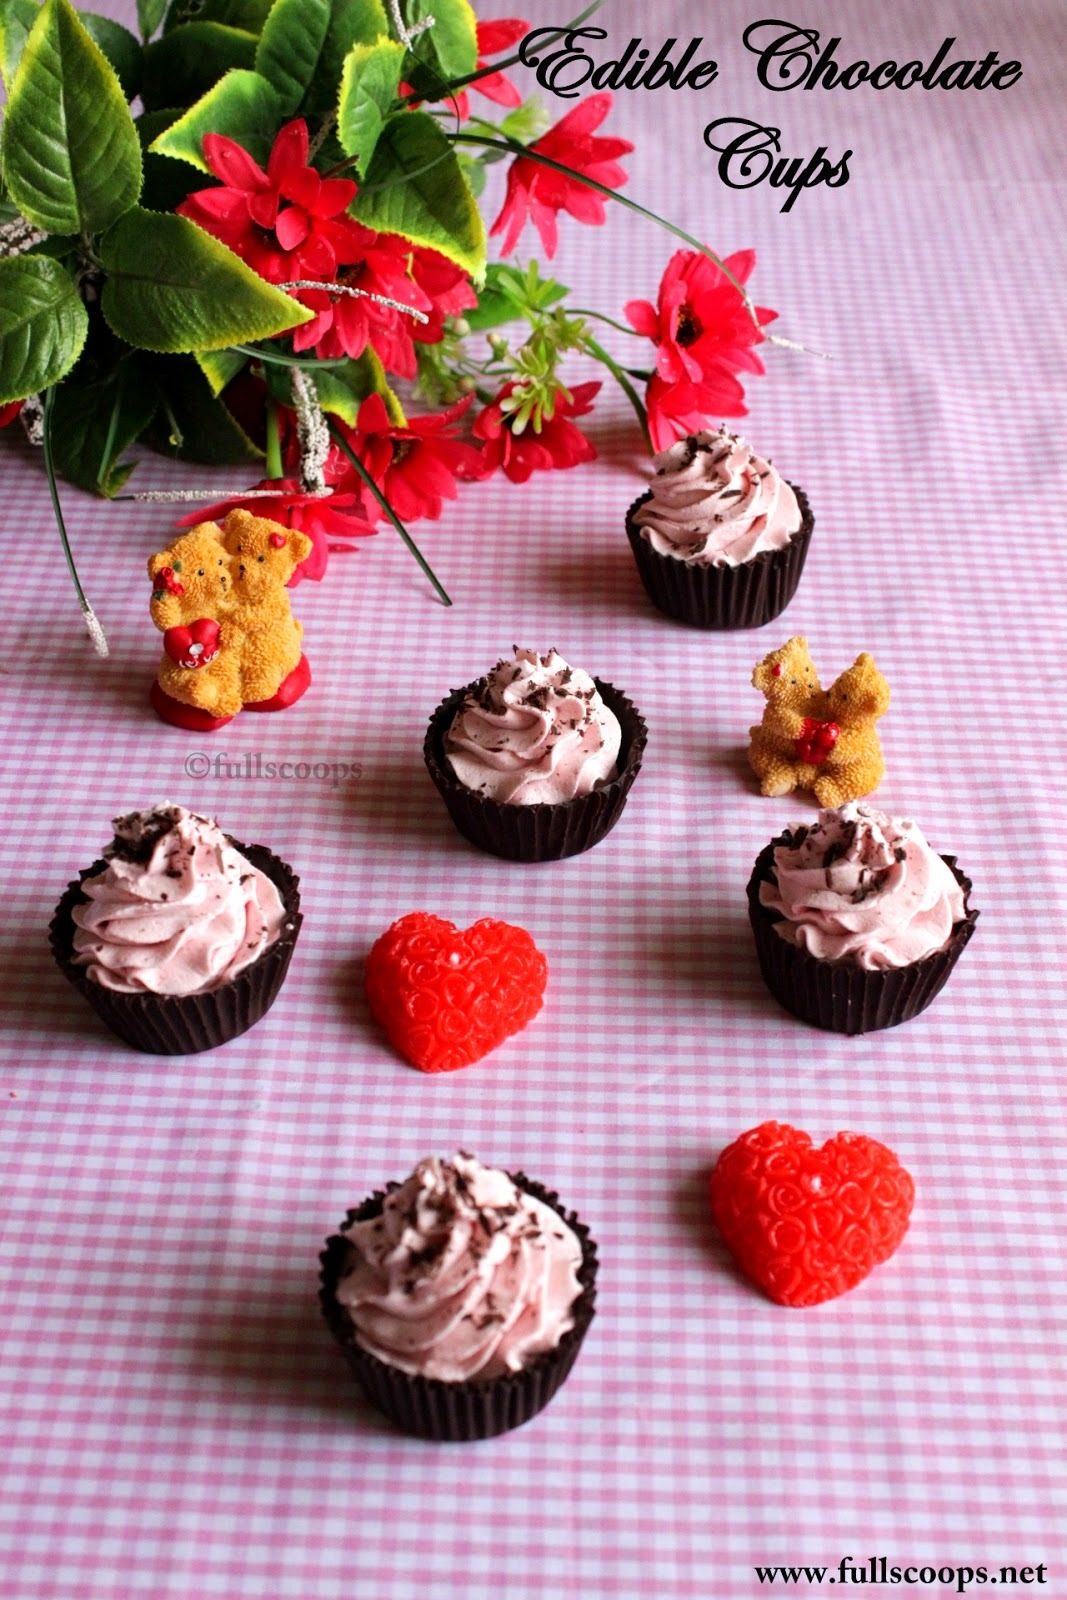 Edible Chocolate Cups with Eggless Strawberry Mousse